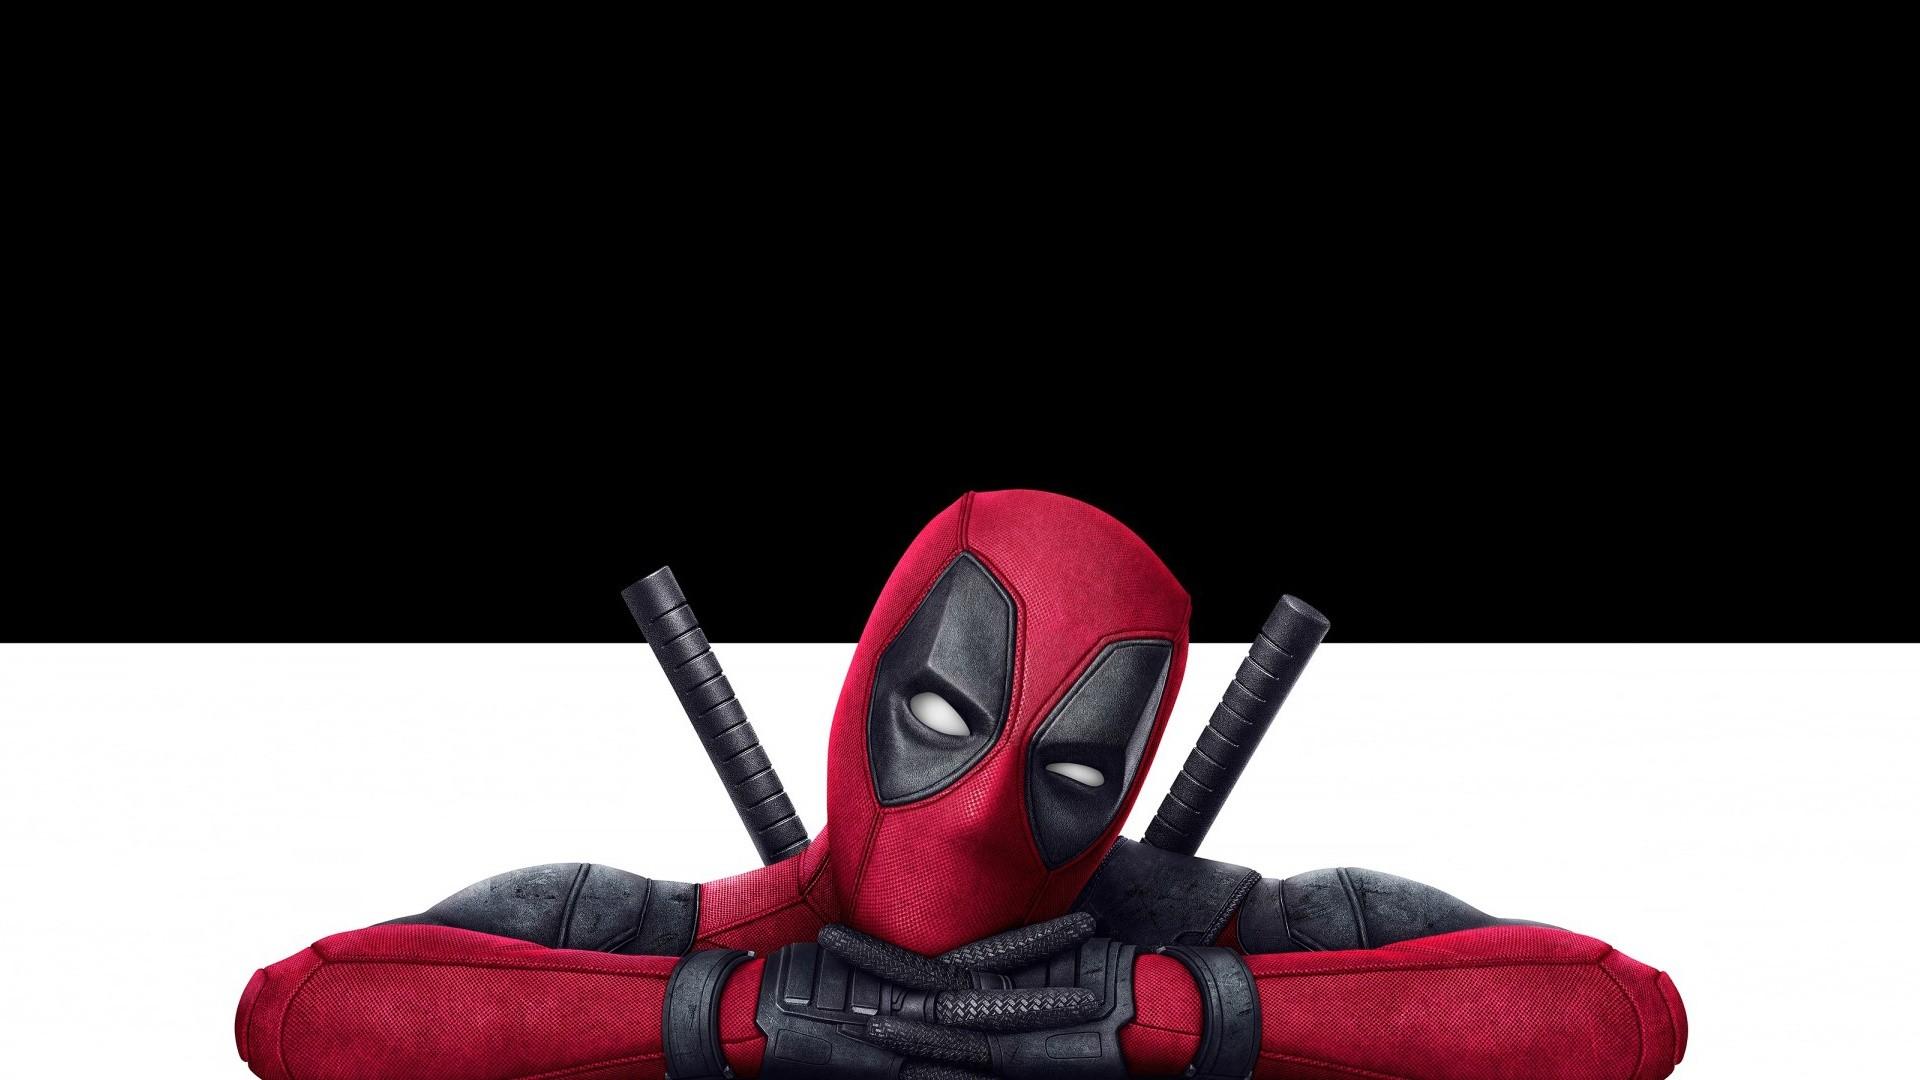 Deadpool HD Wallpaper ·① Download Free Cool Backgrounds